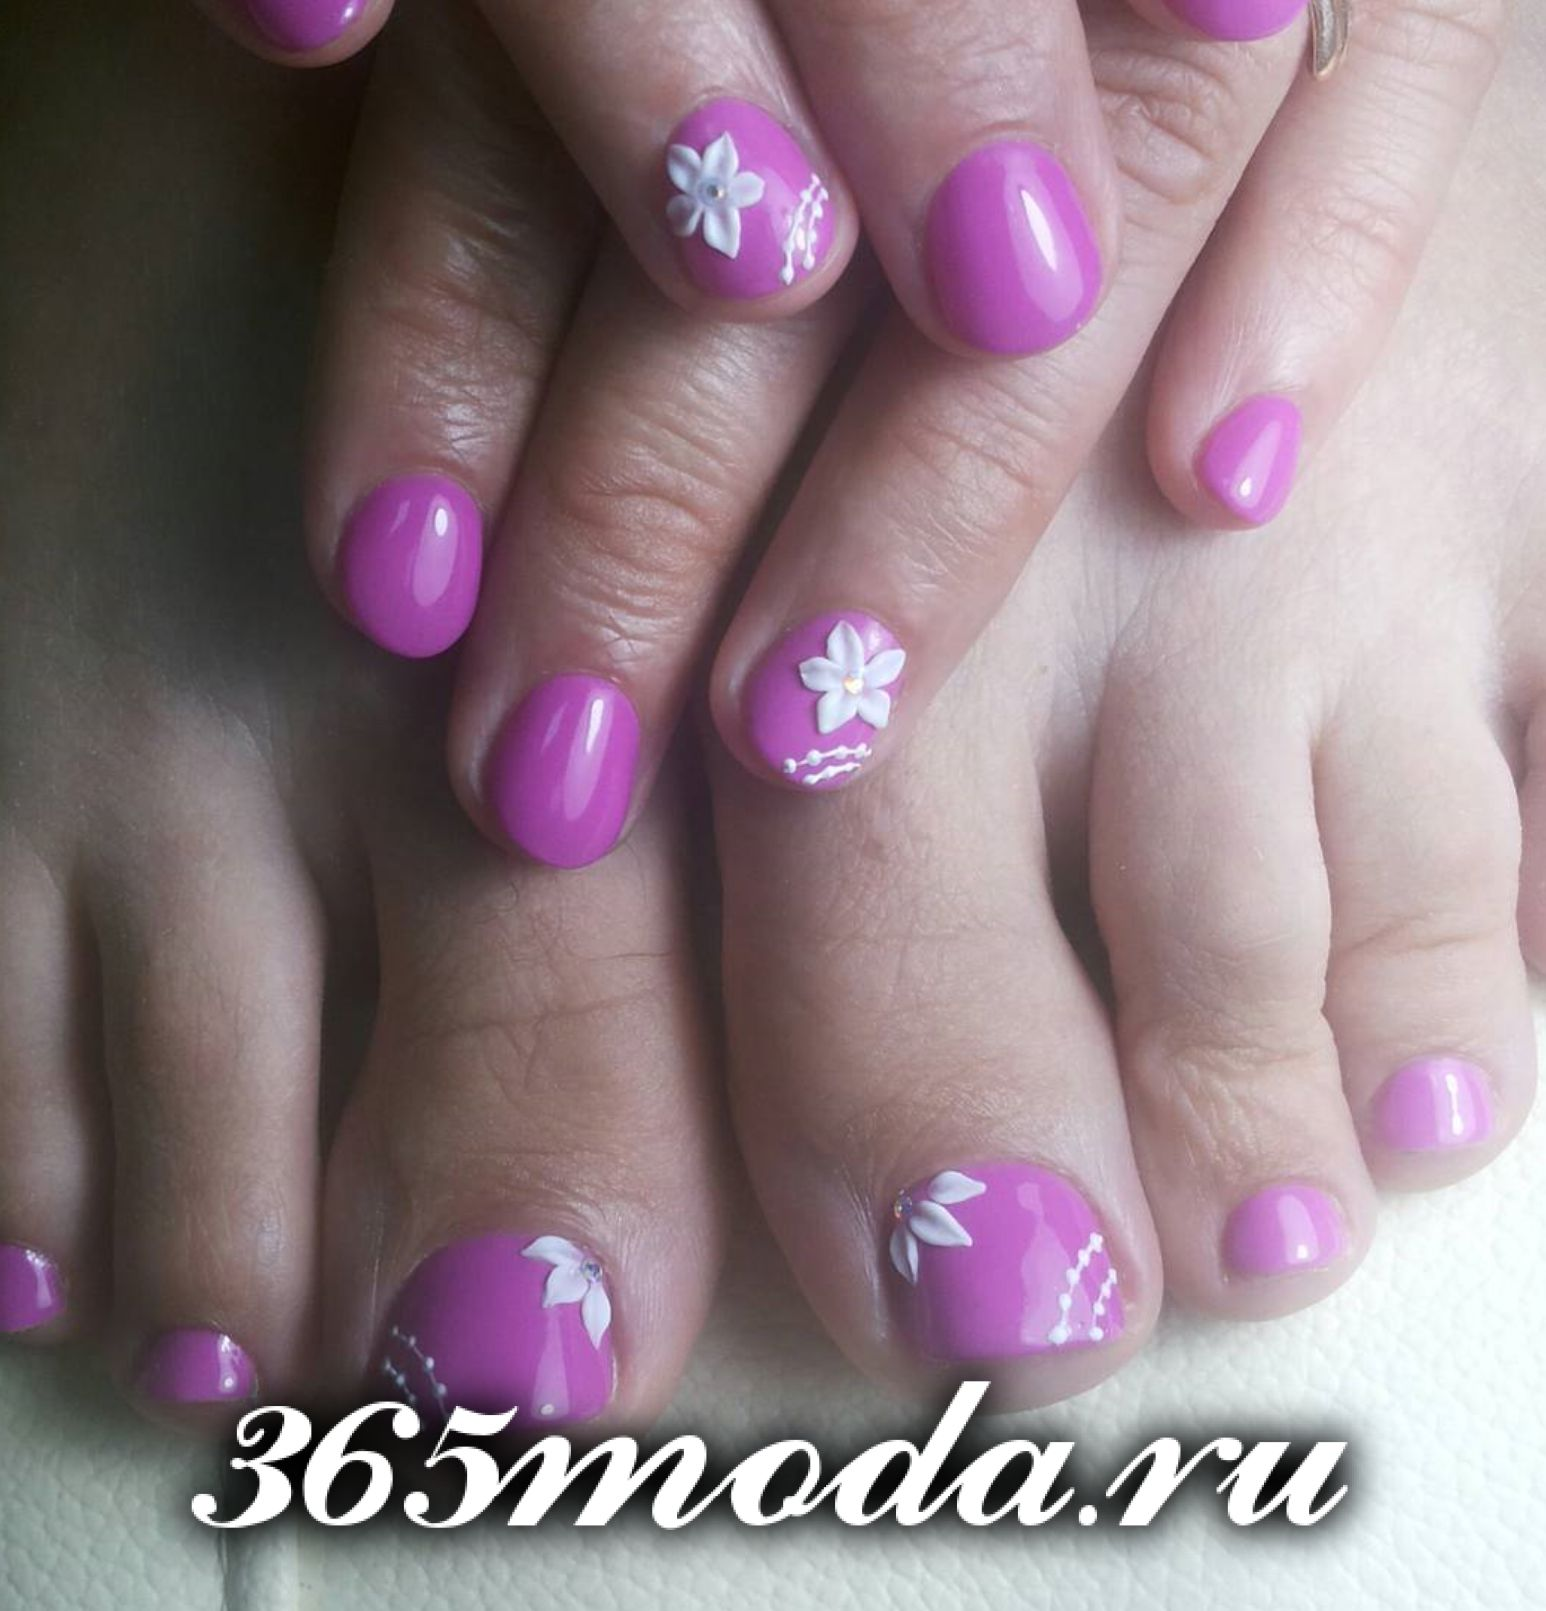 pedicur (5)